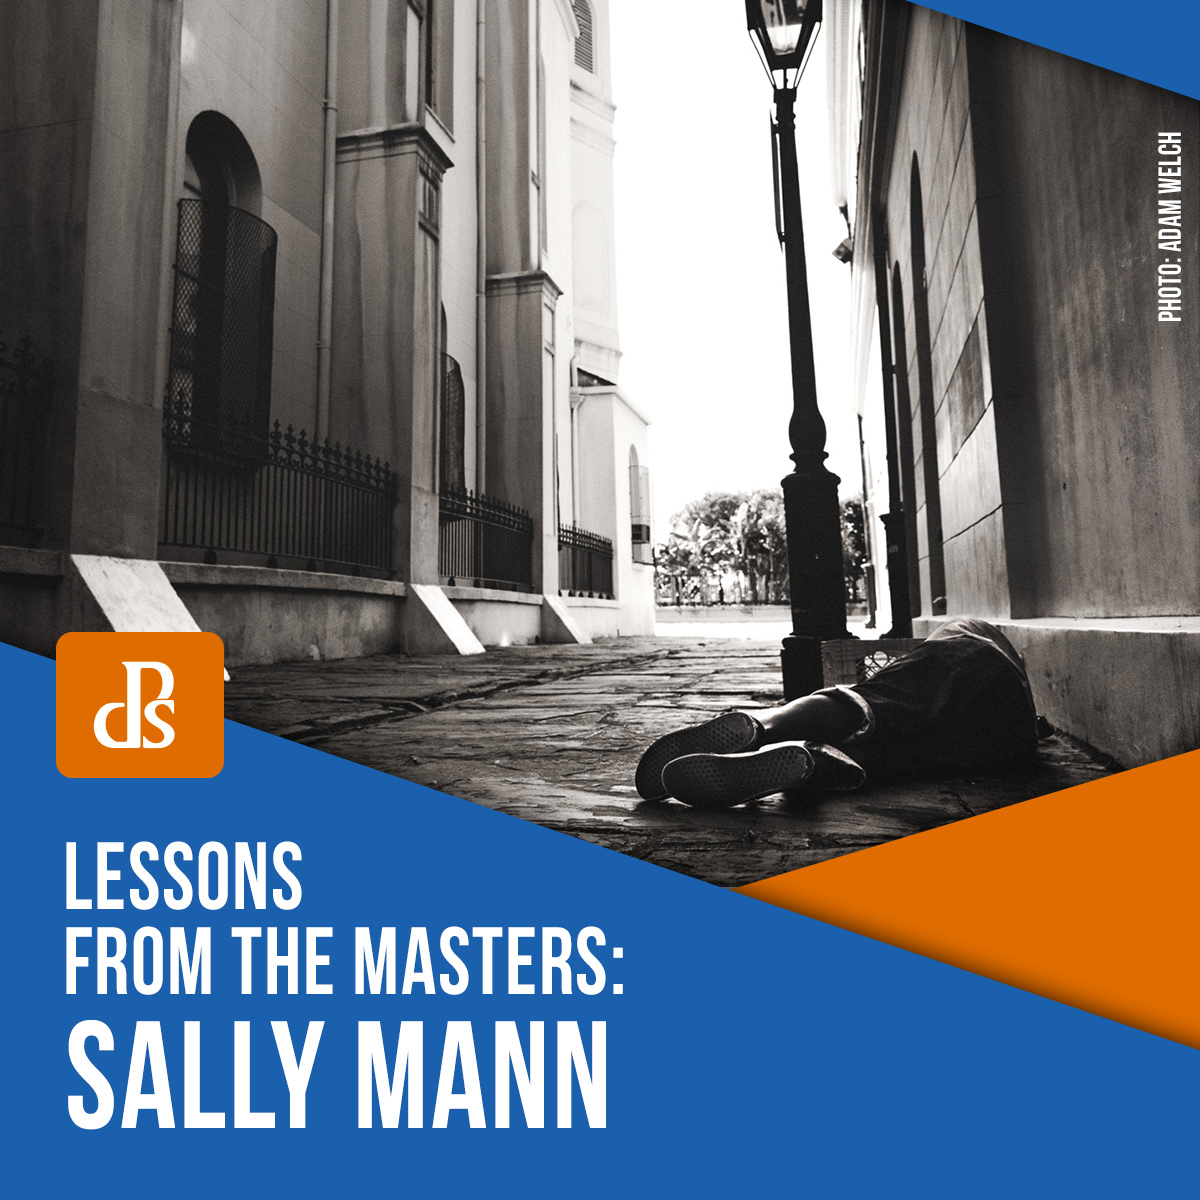 Lessons from the Masters: Sally Mann